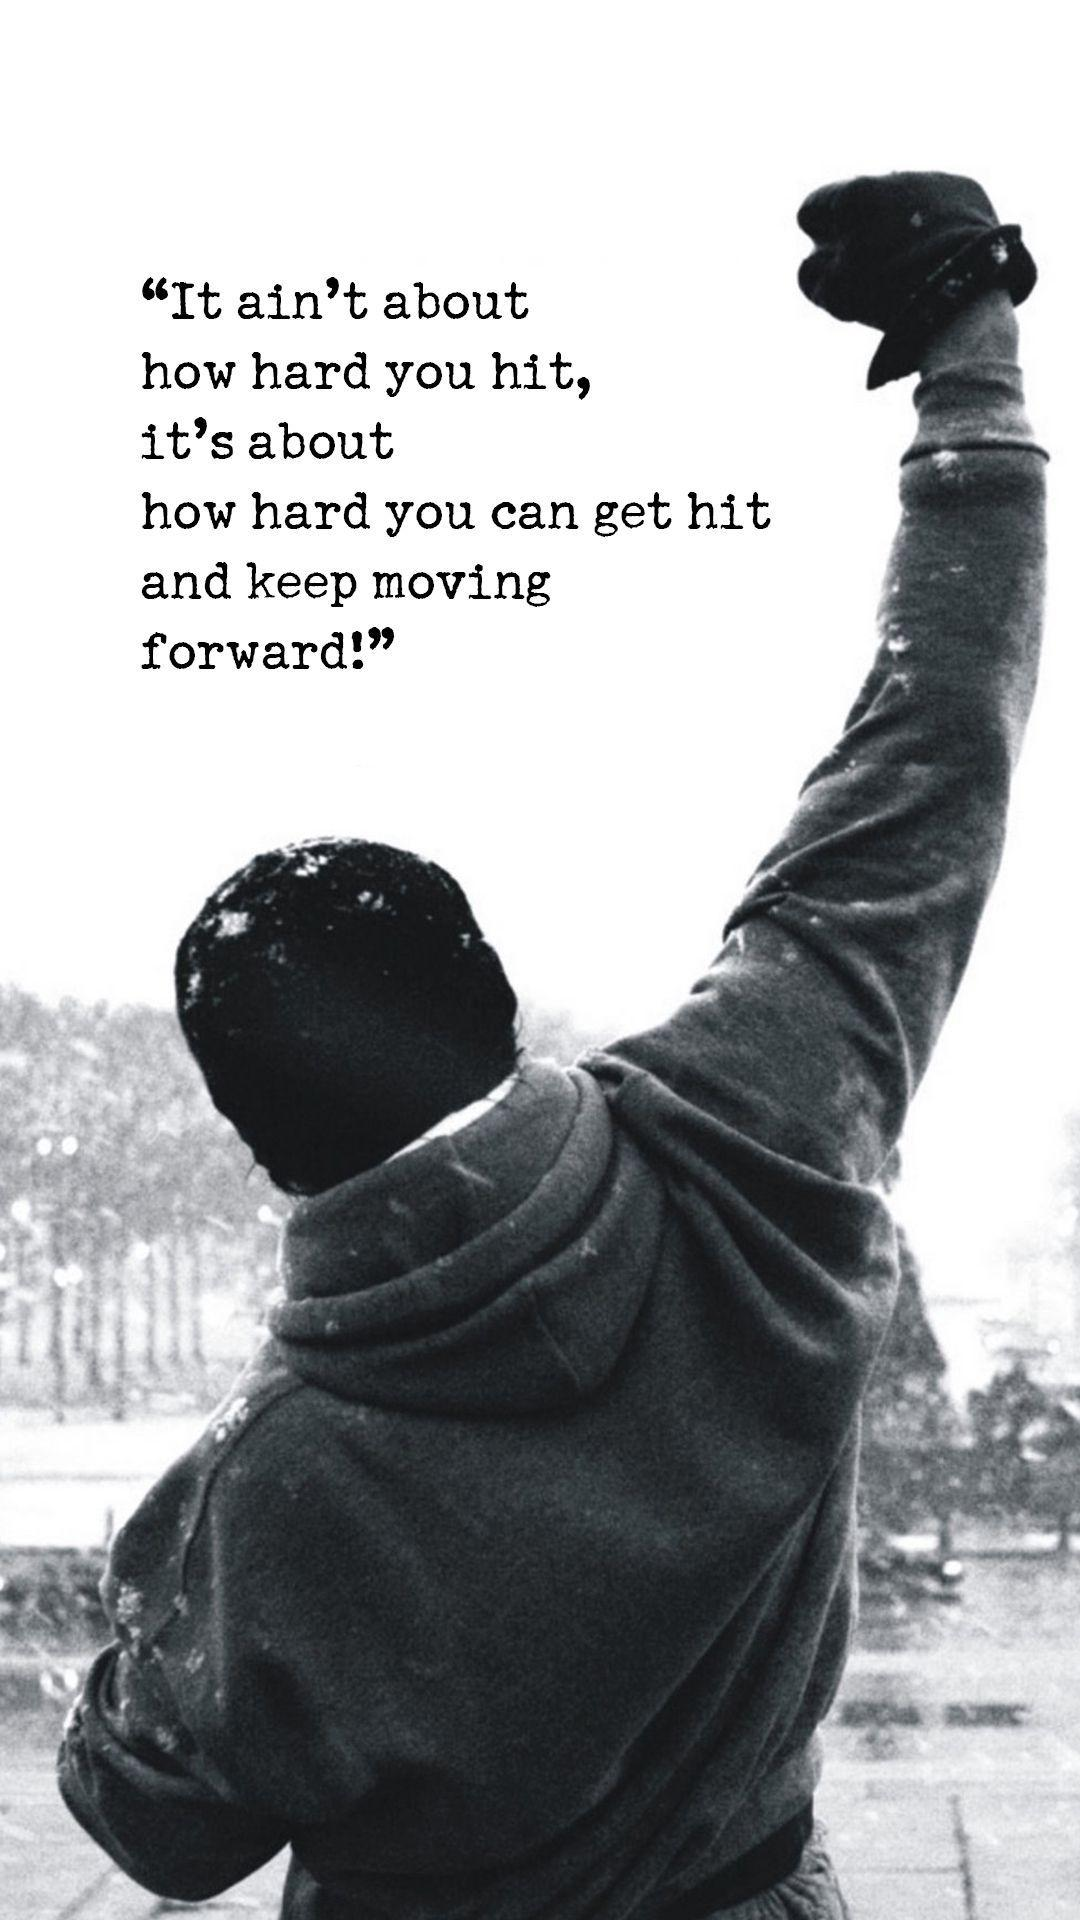 Rocky Balboa Motivational Words iPhone 6 Plus HD Wallpaper | motto ...